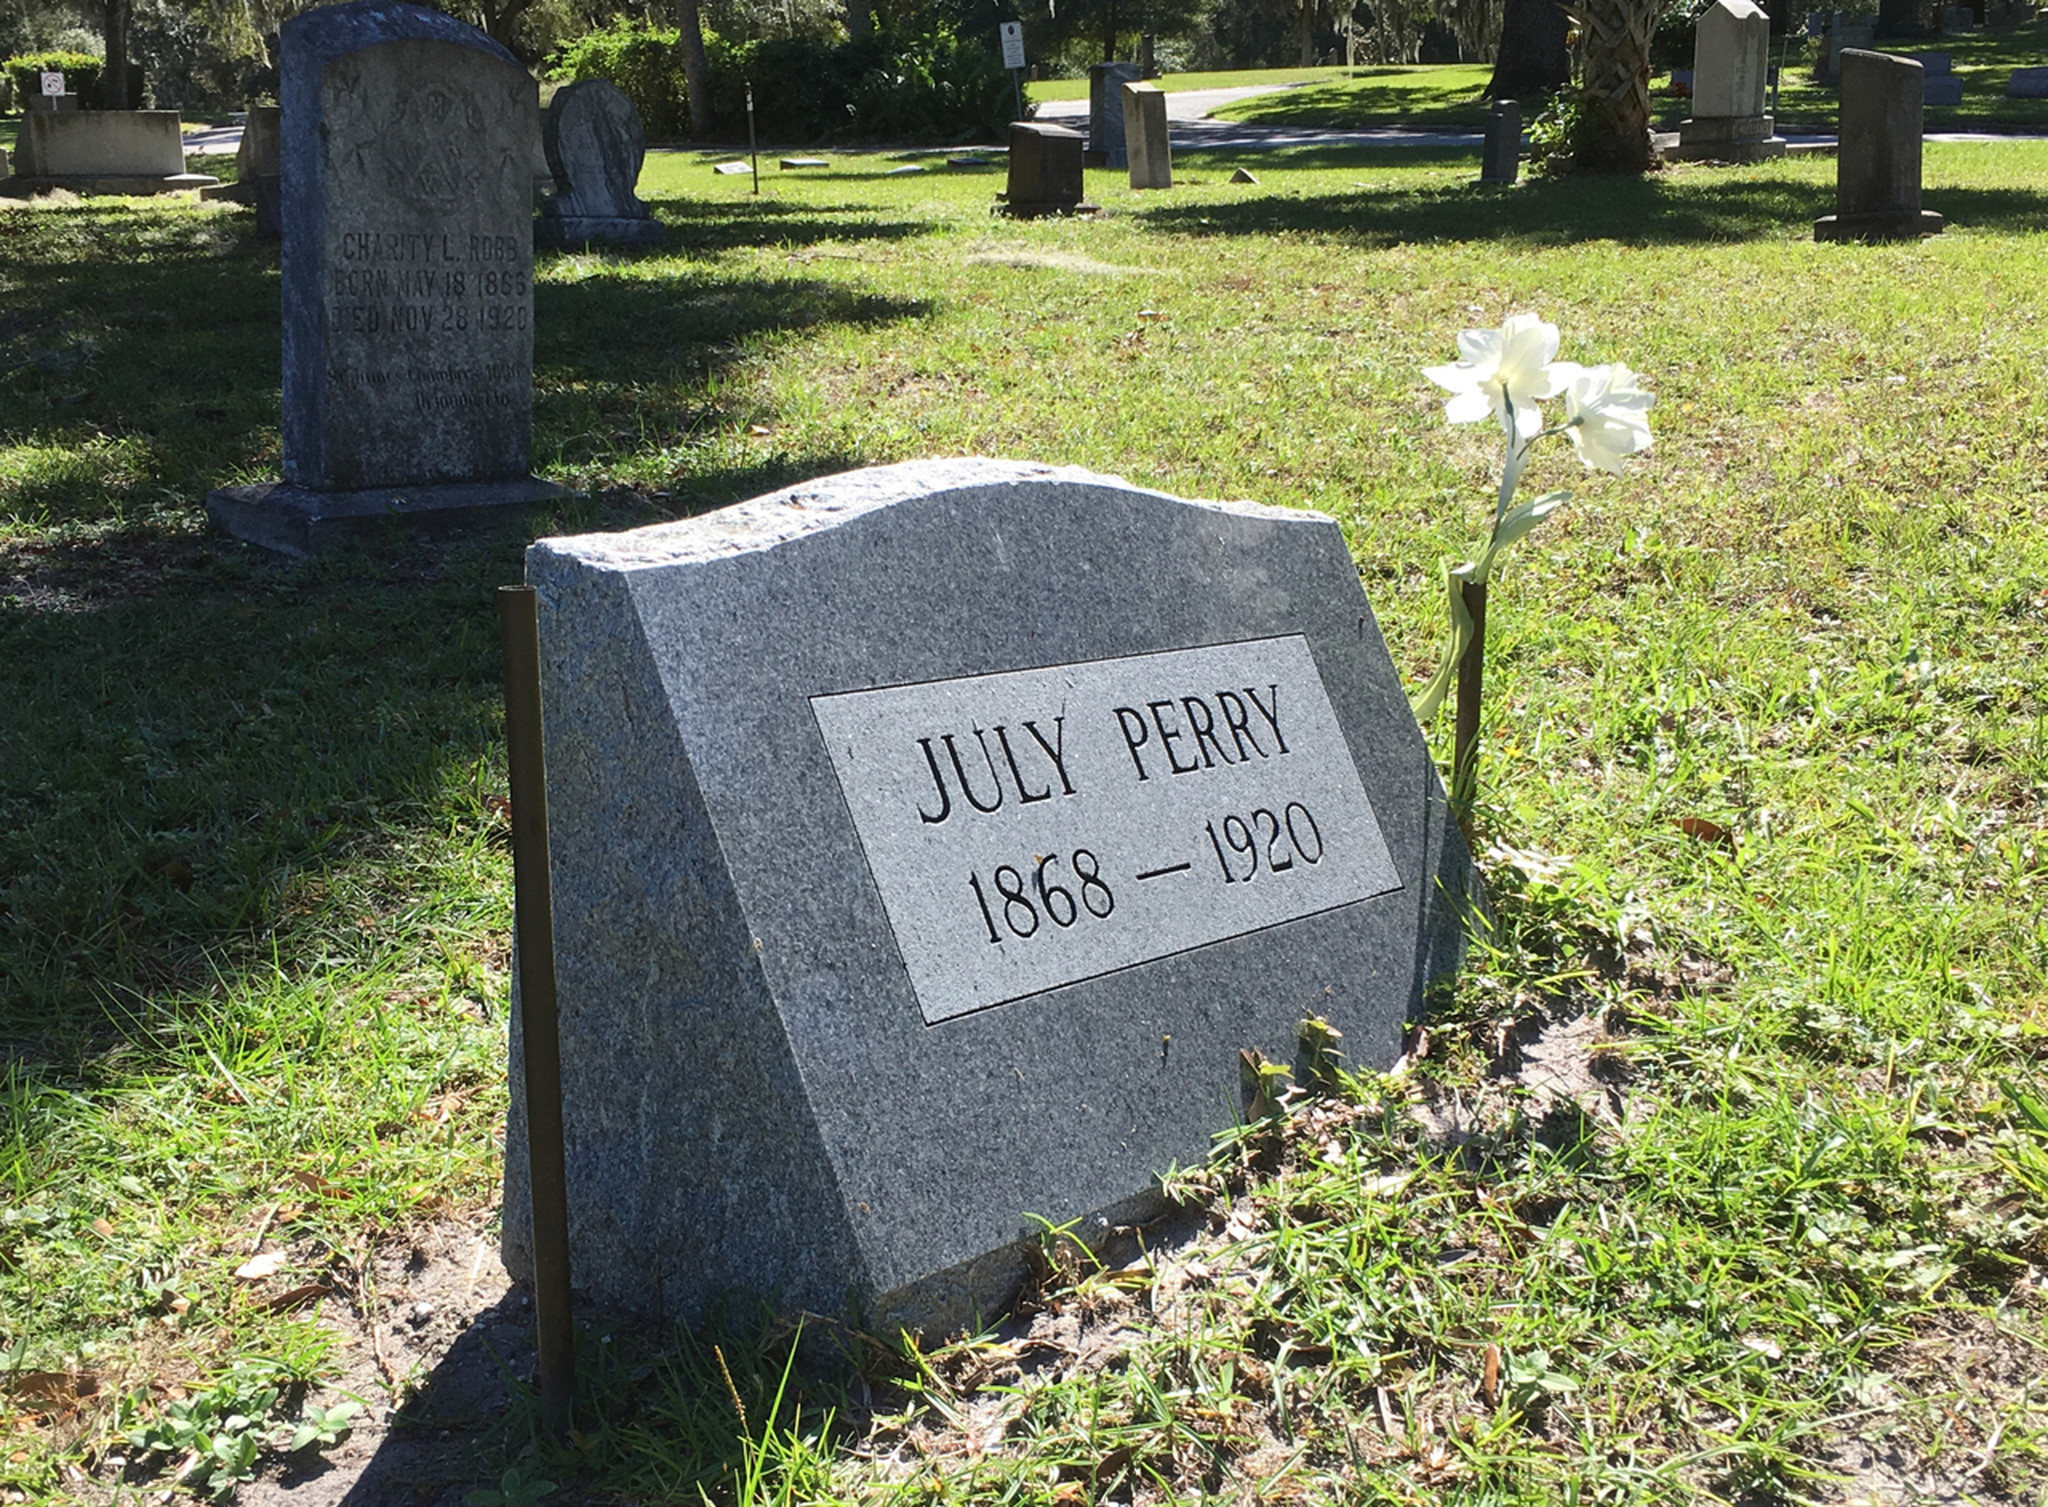 Headstone For July Perry At Greenwood Cemetery Riches: Fear Ruled Election Day In Orange County, 1920